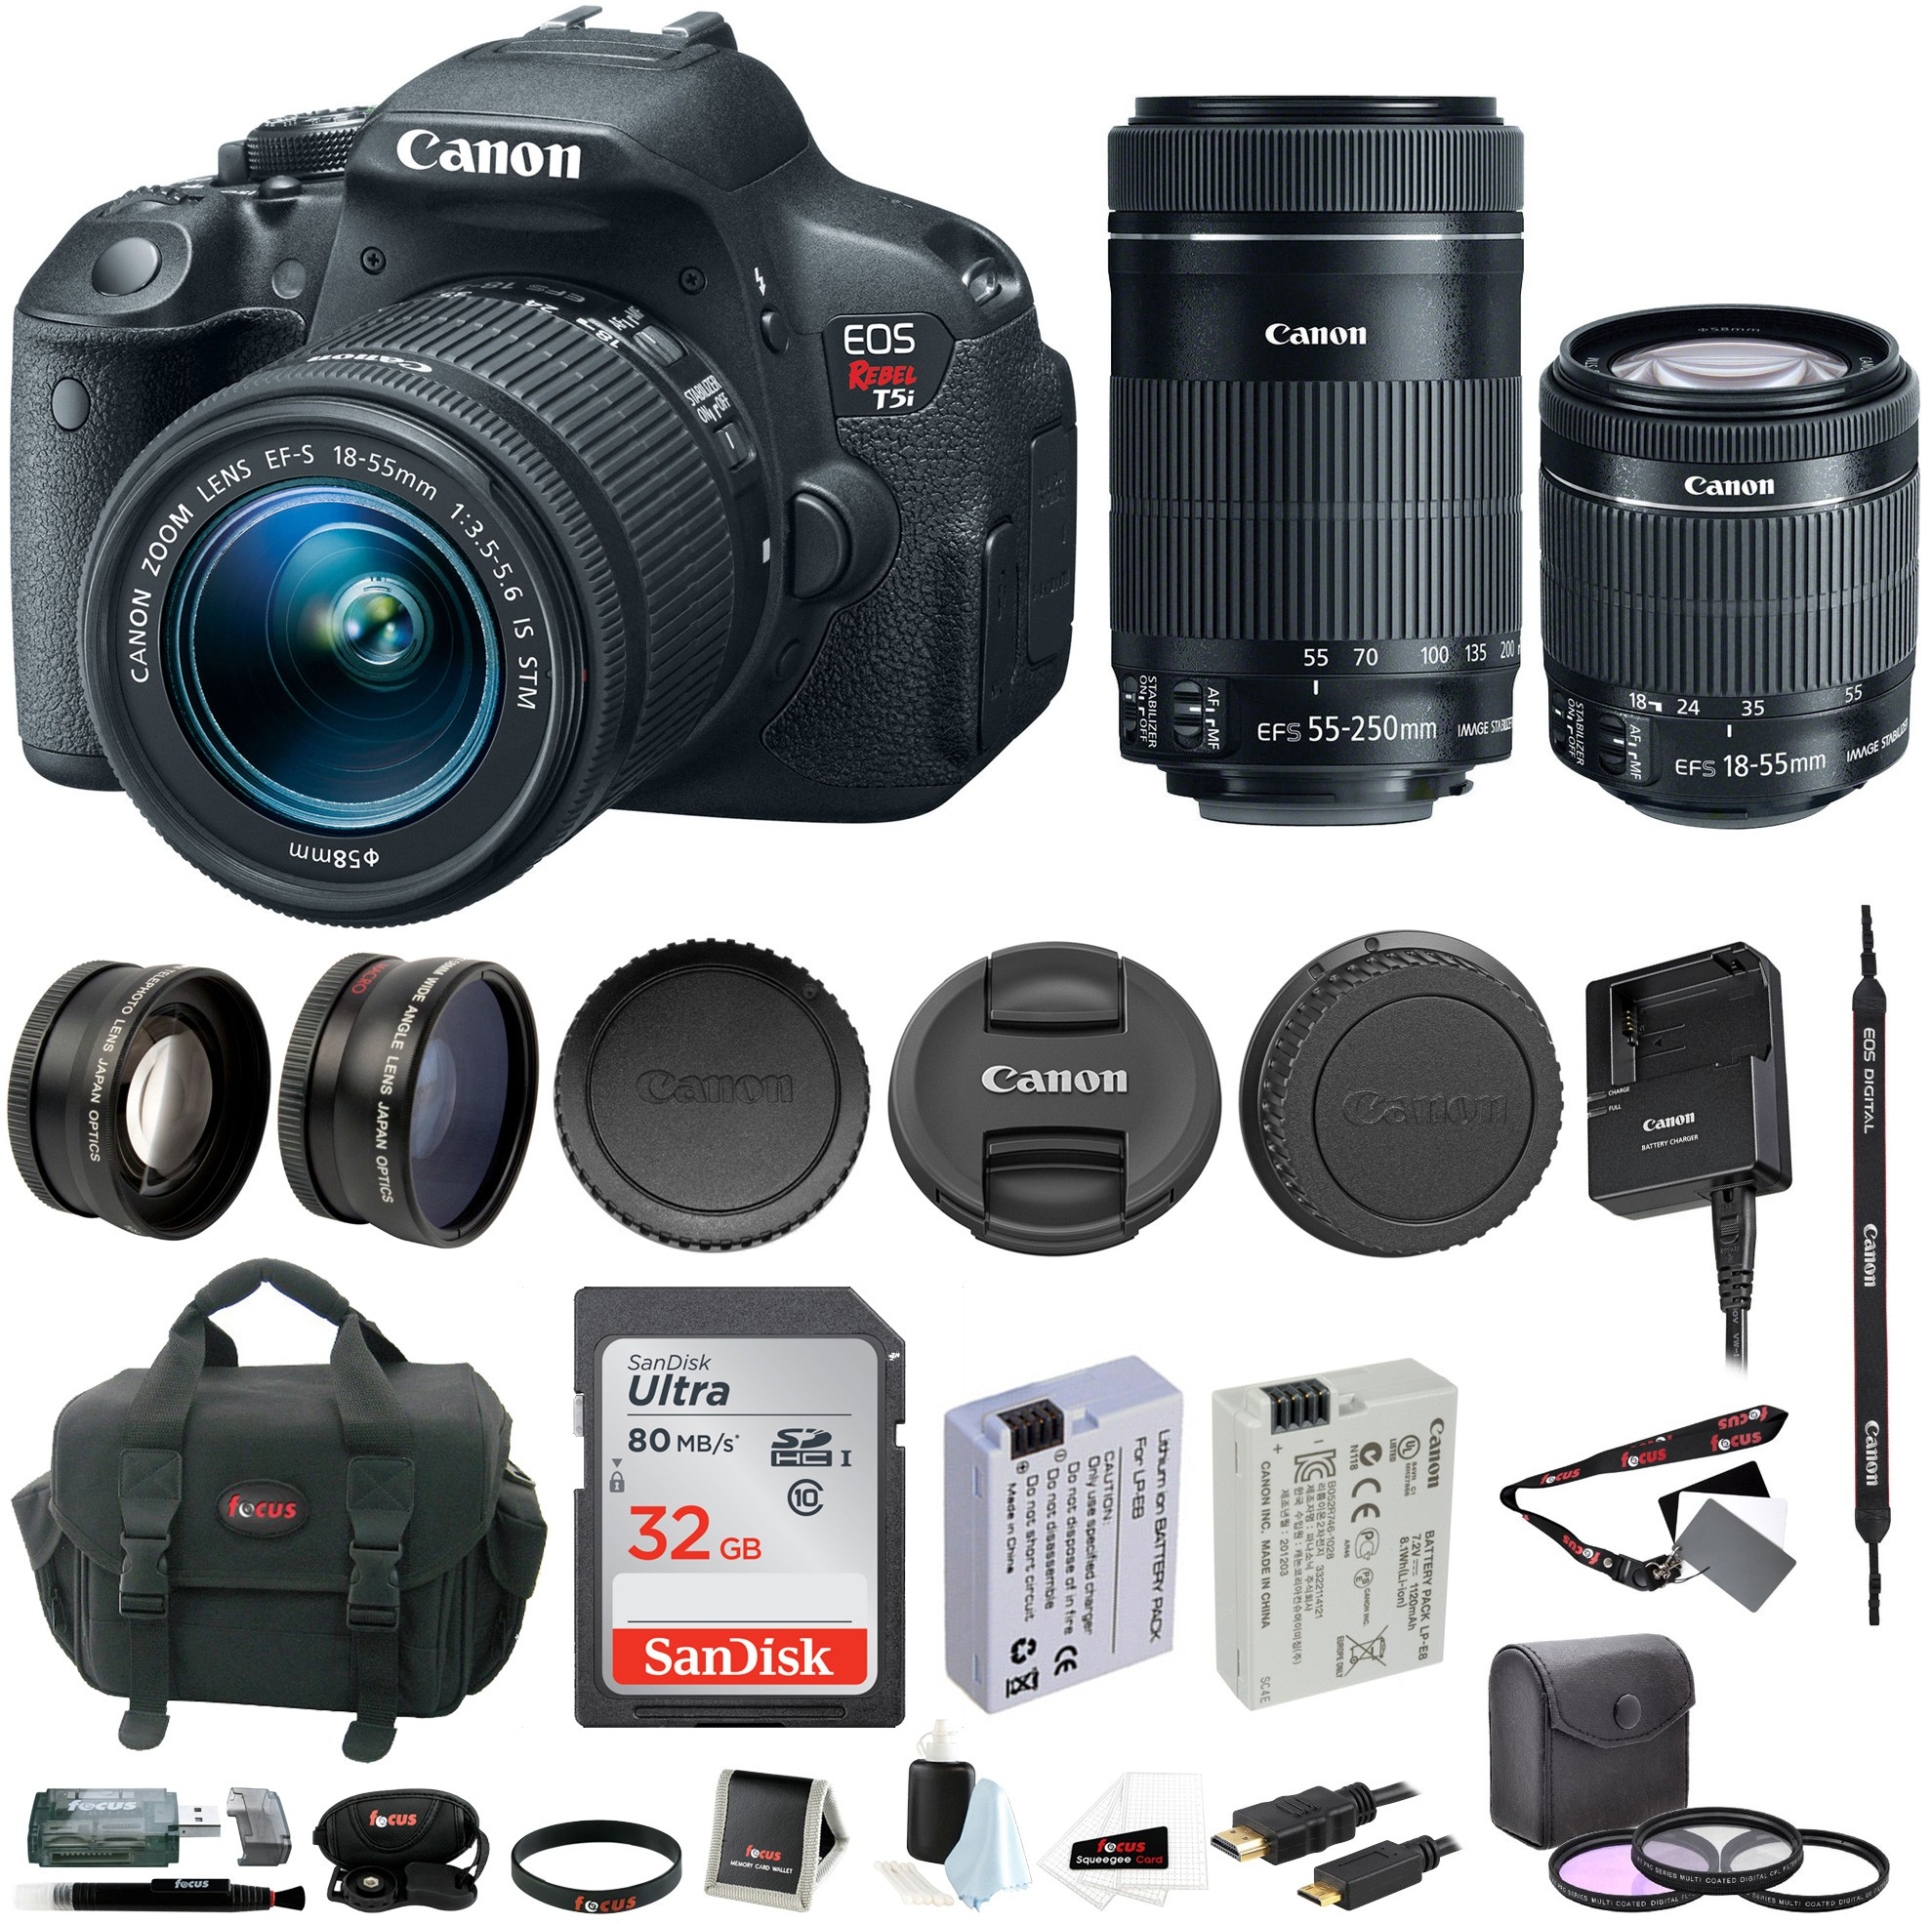 Peculiar Canon Eos Rebel T5i Dslr W 18 55mm 55 250mm Lenses 32gb Accessory Bundle Acaneosdrt5ik7 D4b T5 Vs T5i Specs T5 Versus T5i dpreview T5 Vs T5i